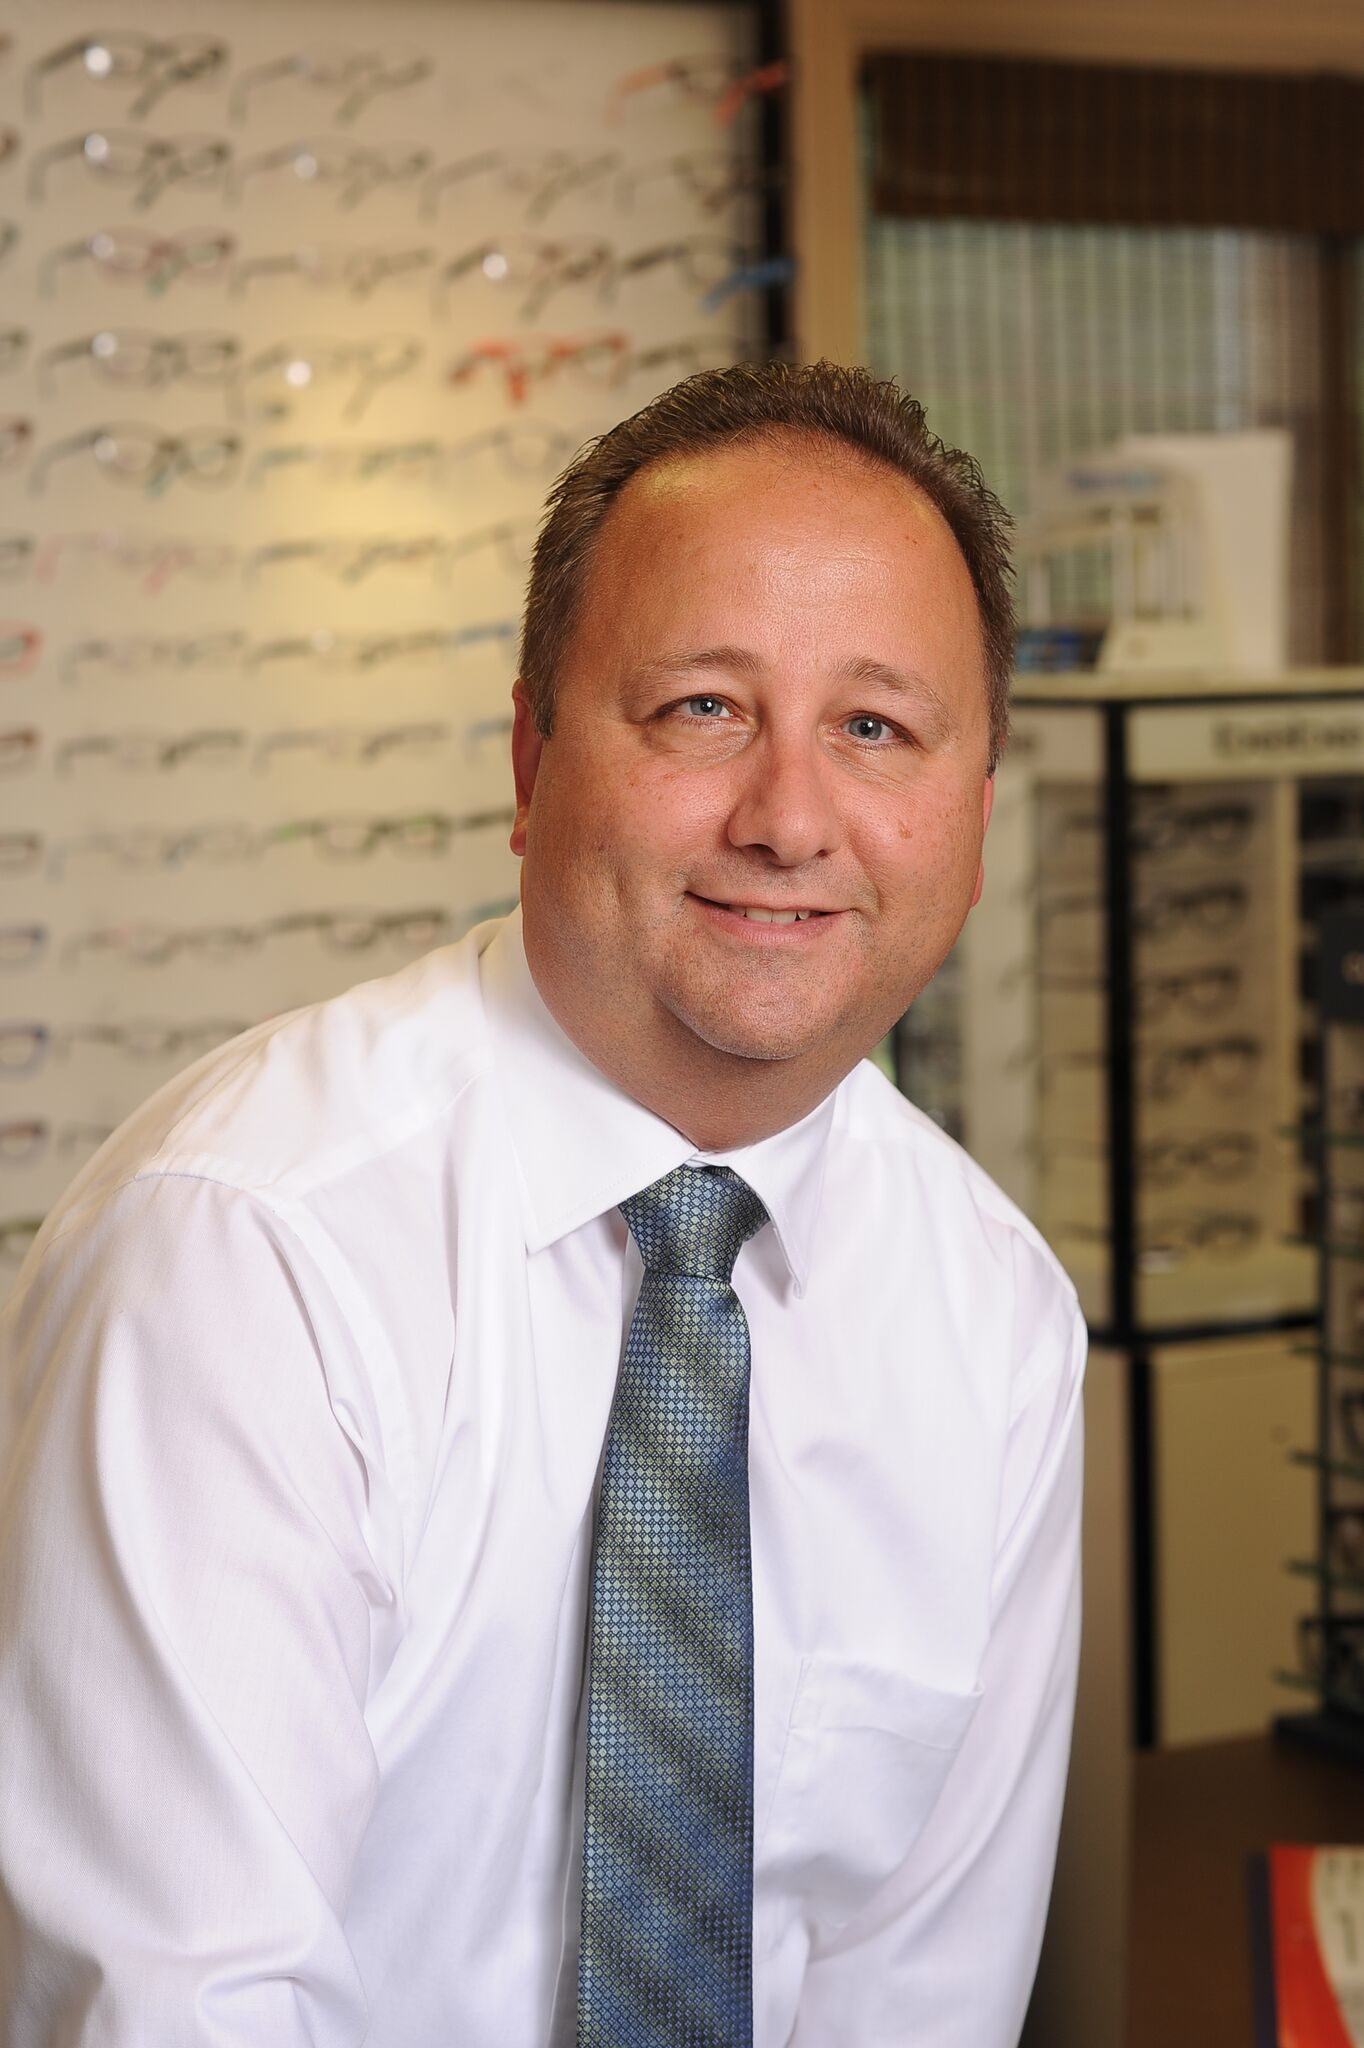 Hi, my name is Joe and I am a 25 year Board Certified Optician.  Working alongside Dr. Smith and our very capable staff has been the most  gratifying experience of my career.  Making a good pair of glasses starts with the correct prescription and frame selection. The products we use to make your glasses are of the highest quality and standards.  One of my hobby's  is collecting vintage military eyewear and understanding the craftsmanship that went into the design of these interesting glasses.  Please ask to see some of my aviator pilot frames when you're at the office!